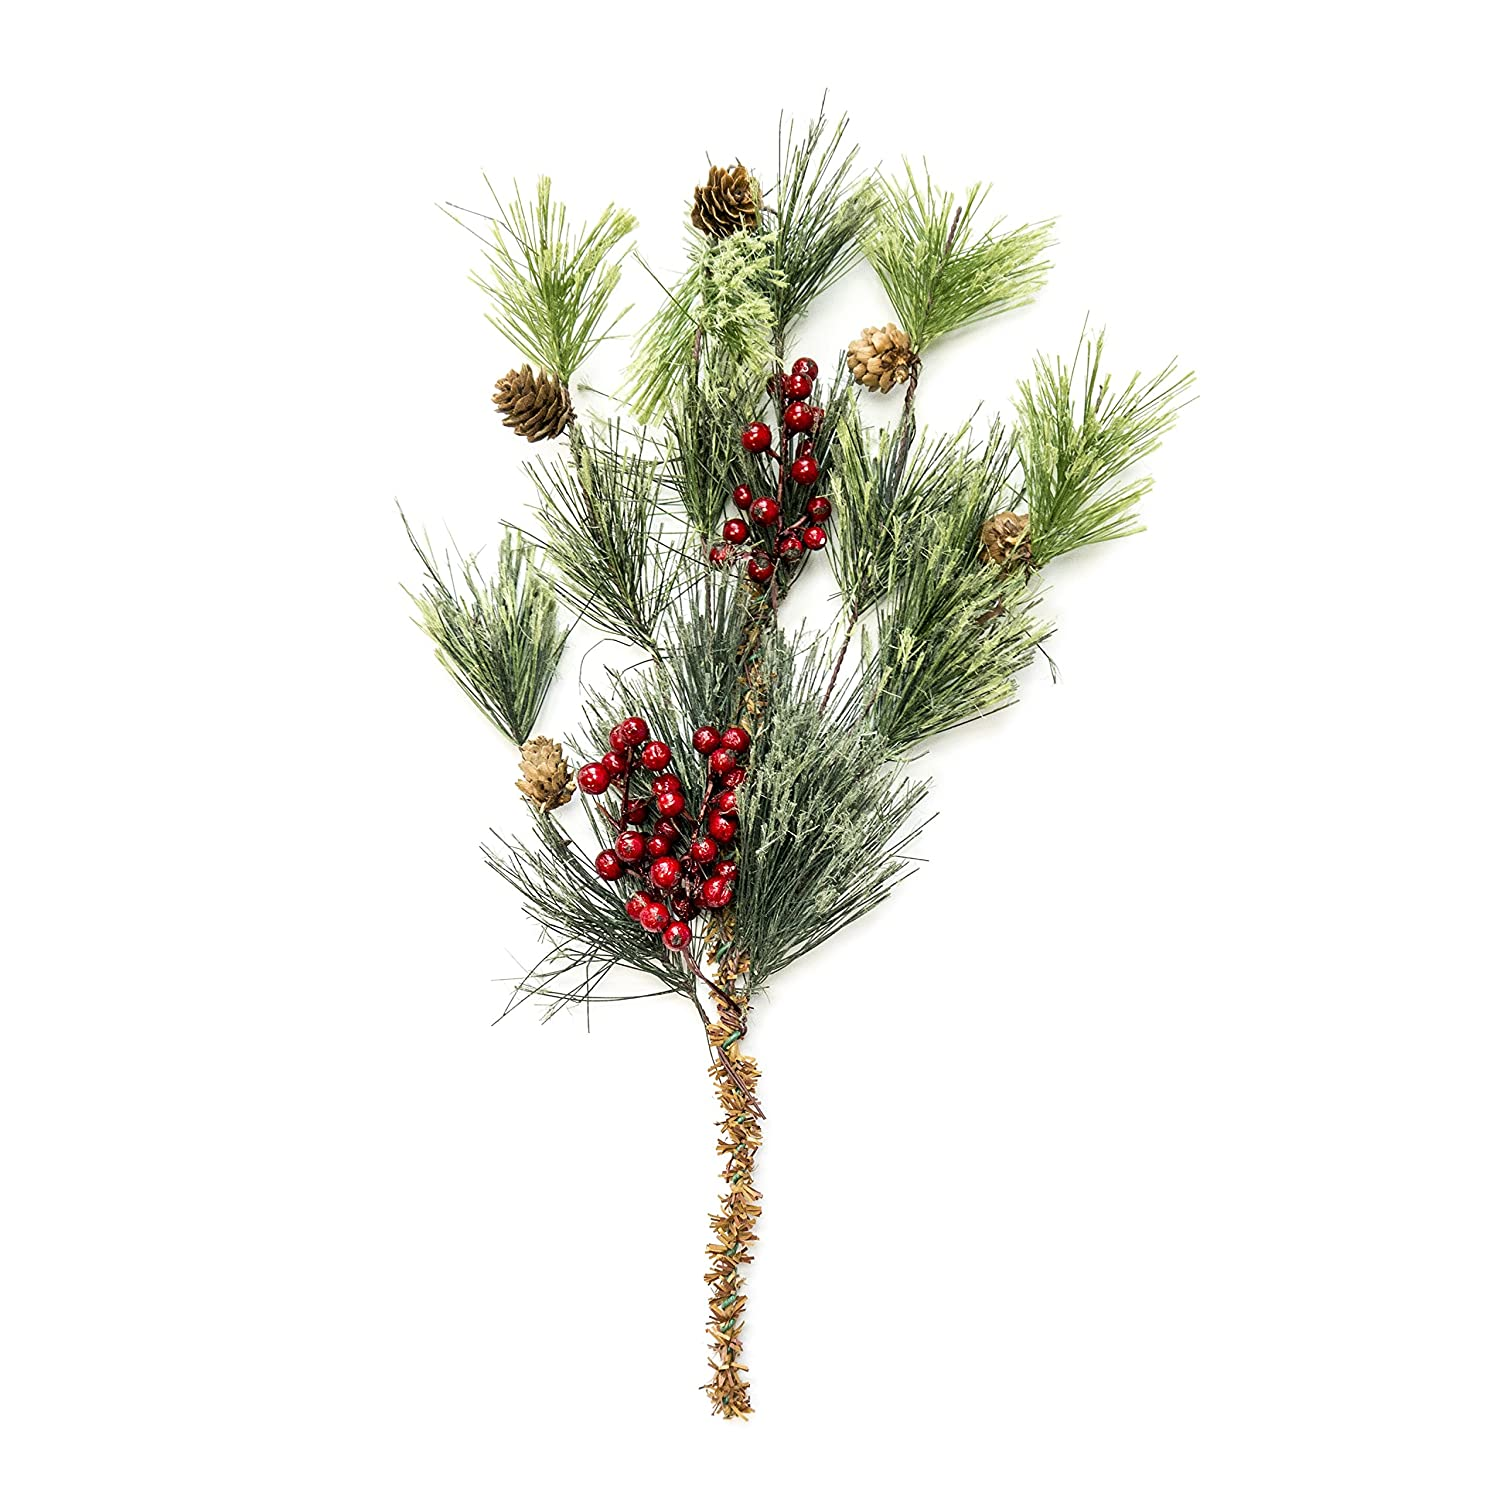 Pine Stems with Berries and Pinecones 6 Pack CraftMore